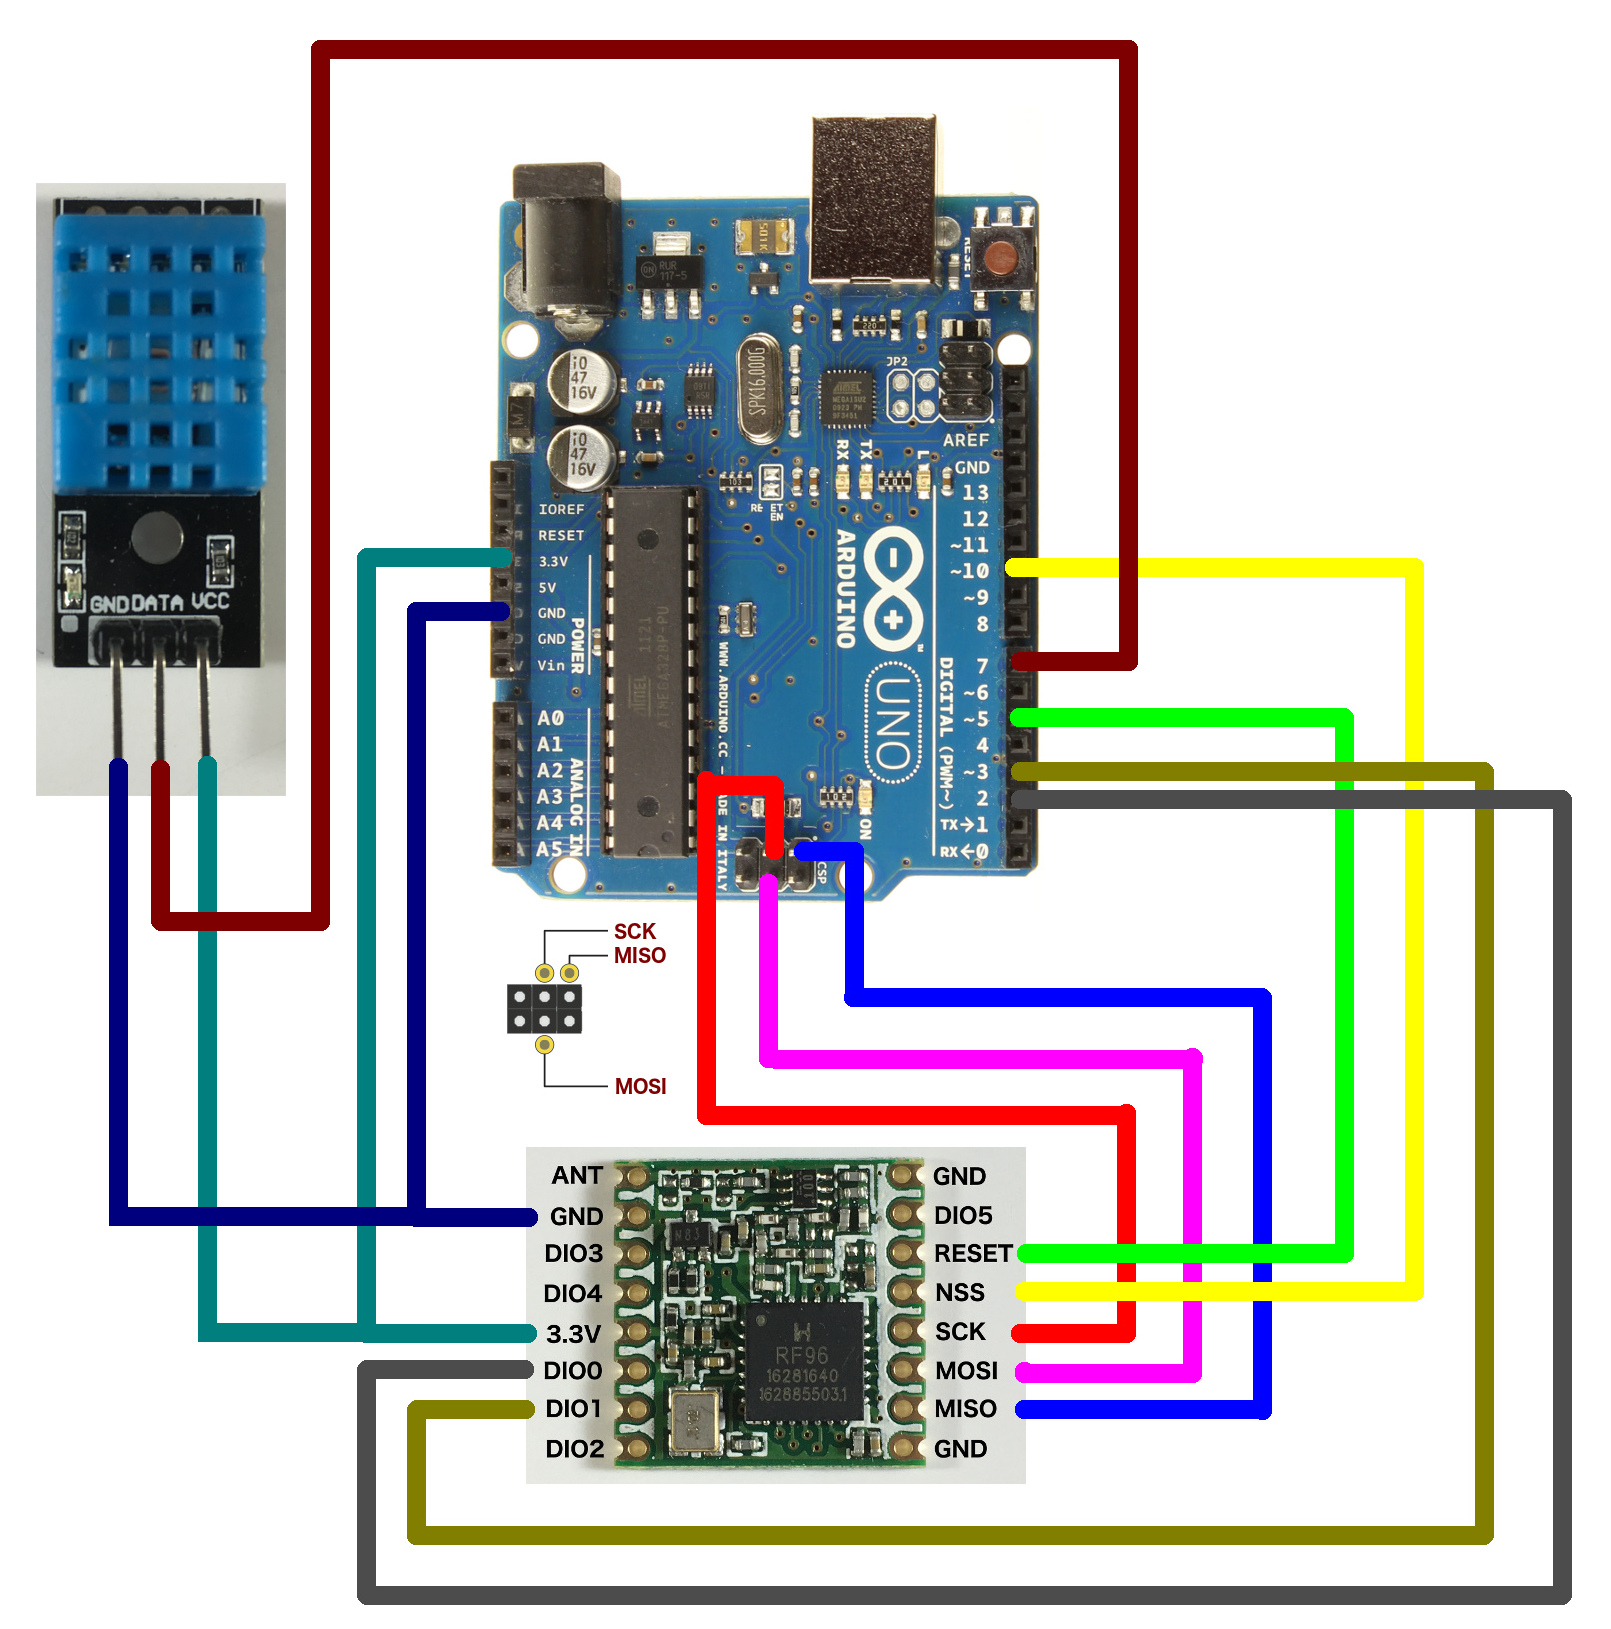 Mobilefish com - Send DHT11 sensor data using the Arduino